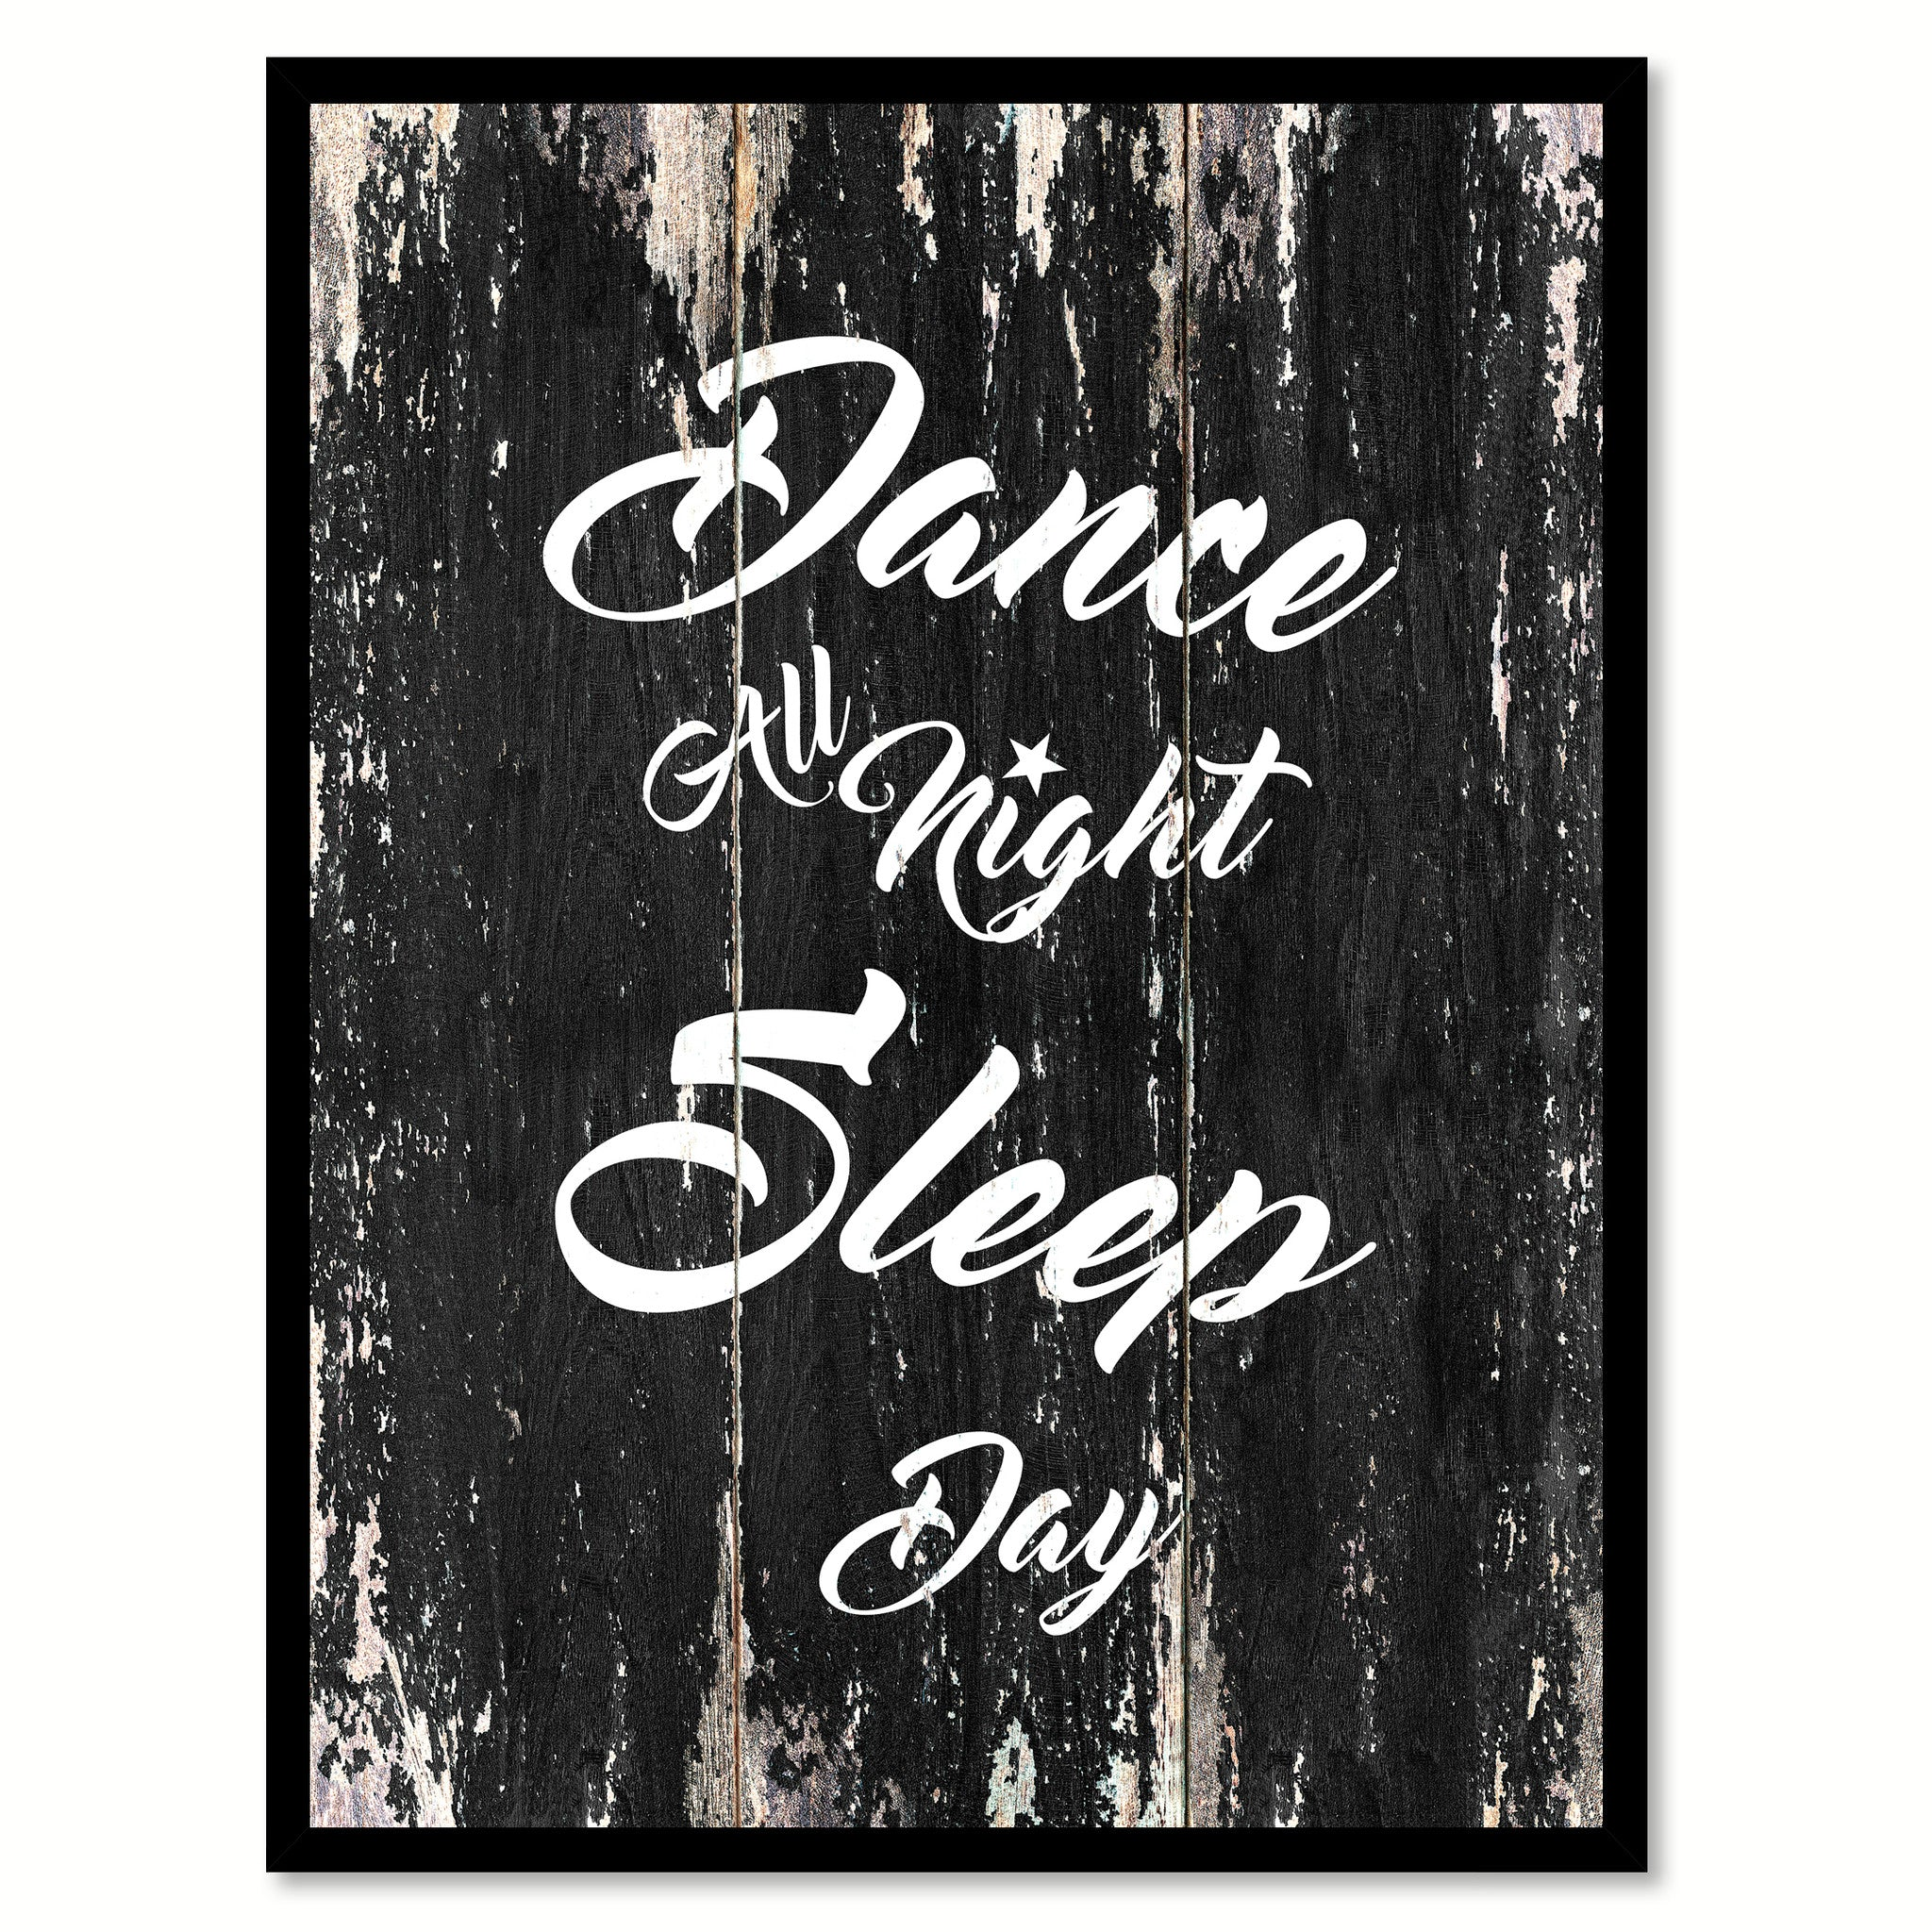 Dance all night sleep all day Motivational Quote Saying Canvas Print with Picture Frame Home Decor Wall Art